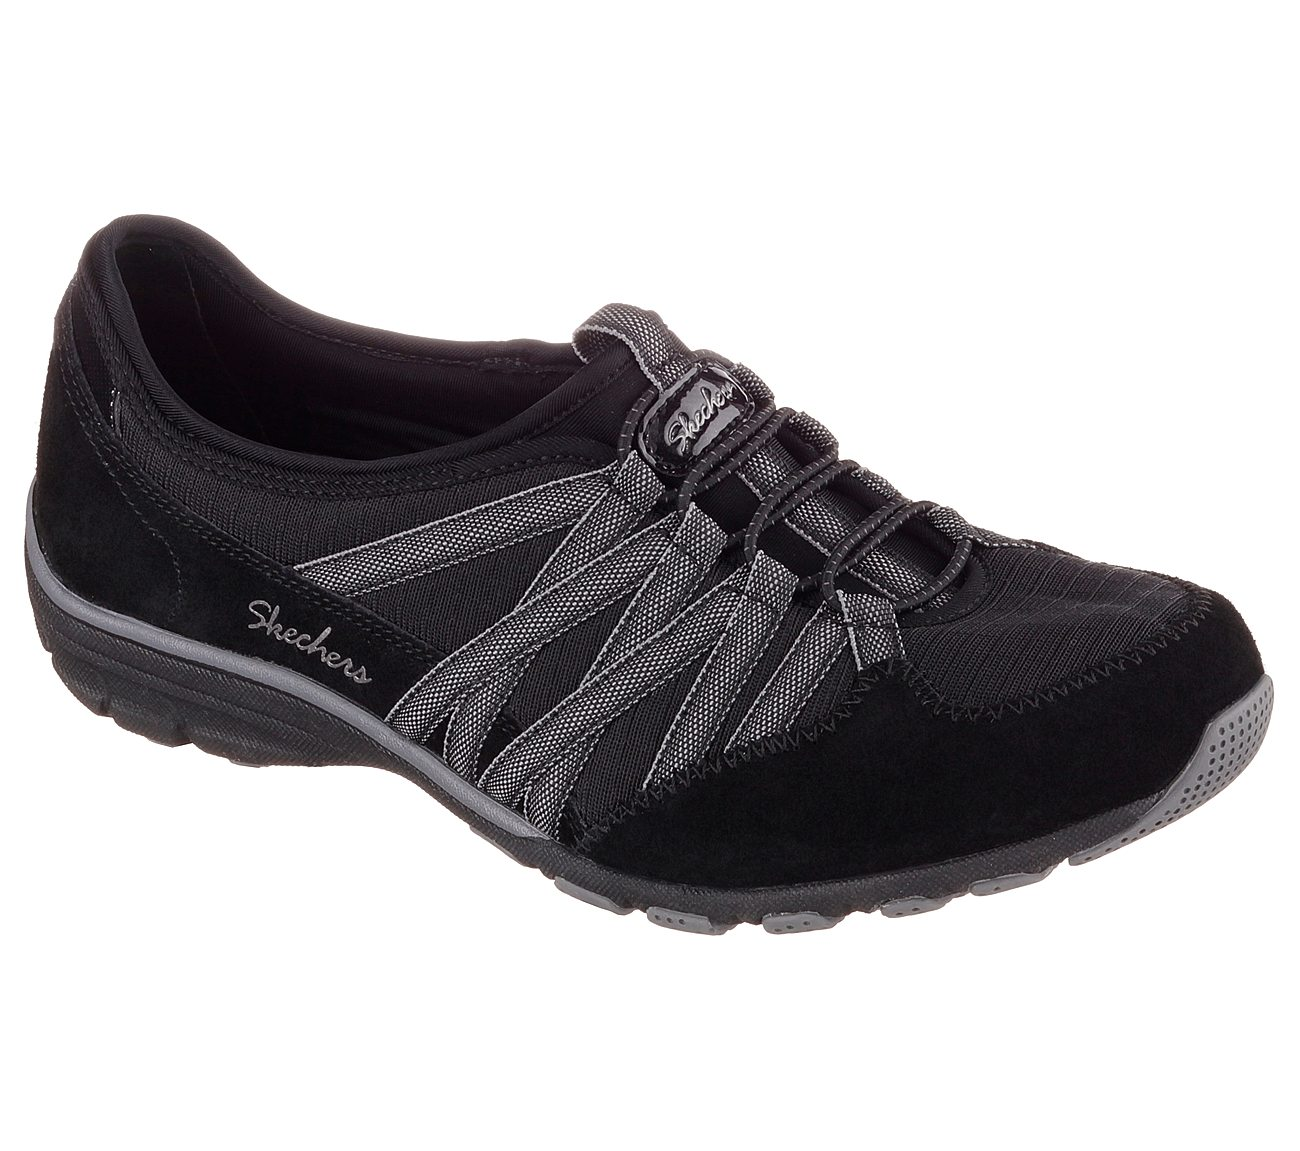 942b9f1b093fe Buy SKECHERS Relaxed Fit: Conversations - Holding Aces Active Shoes ...